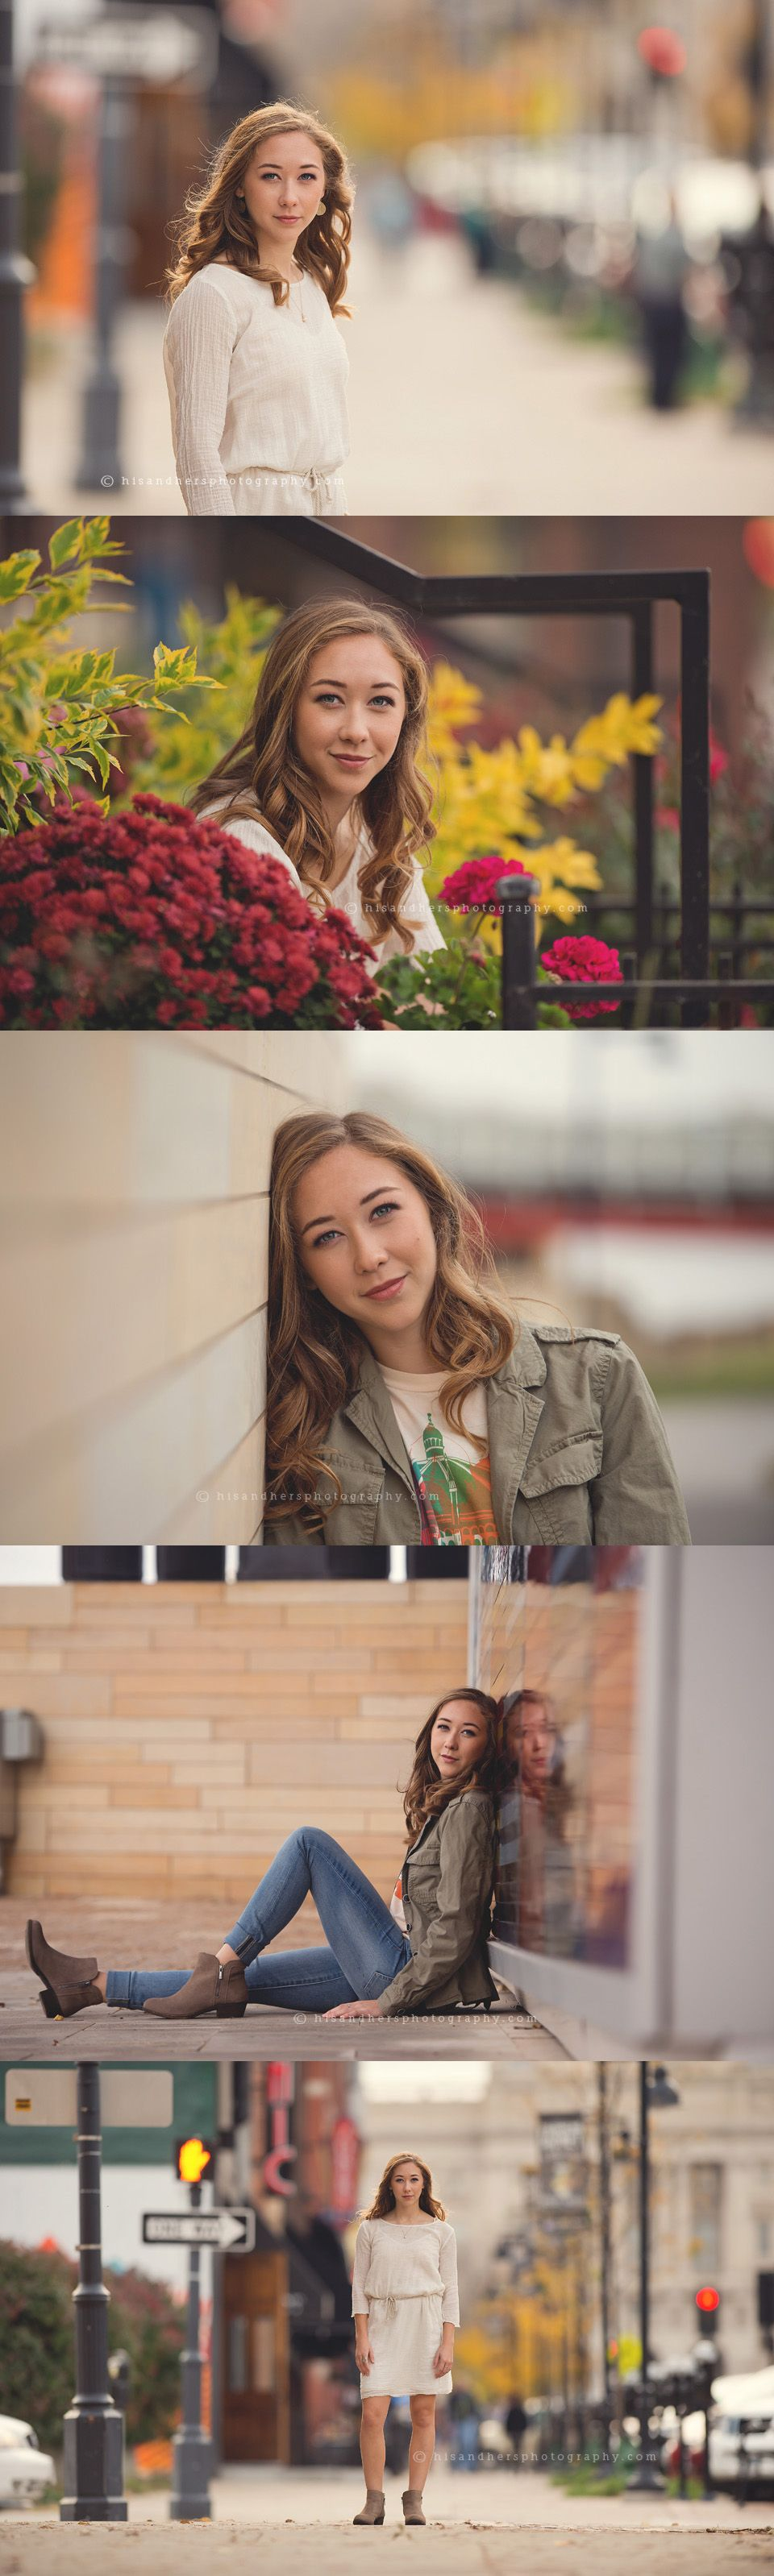 Senior | Bella, Class of 2016